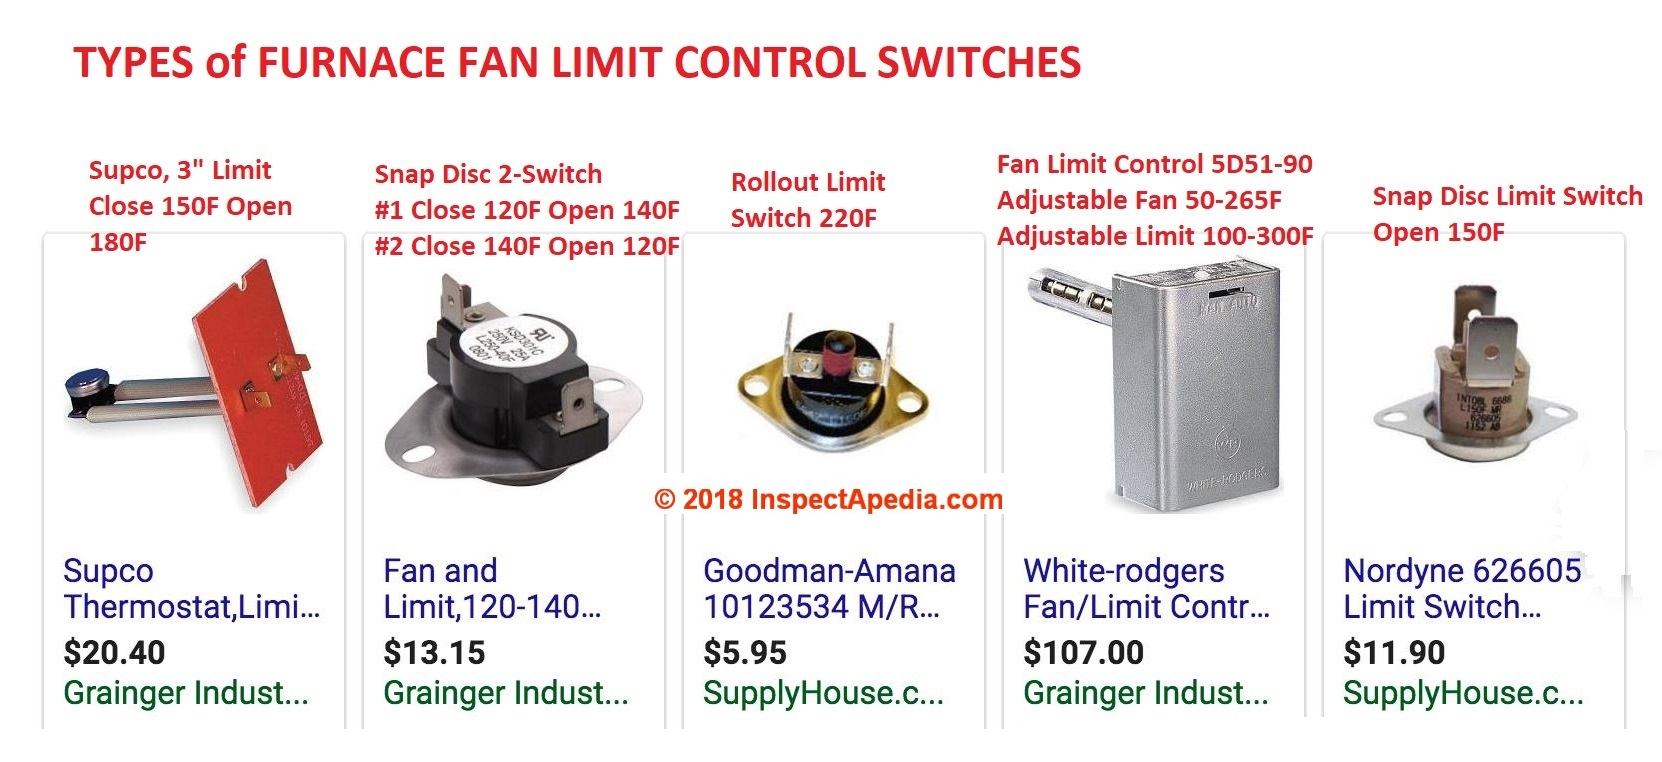 Furnace Fan Limit Switch How Does A Work To Duct Speed Control Wiring Diagram Types Of Switches C